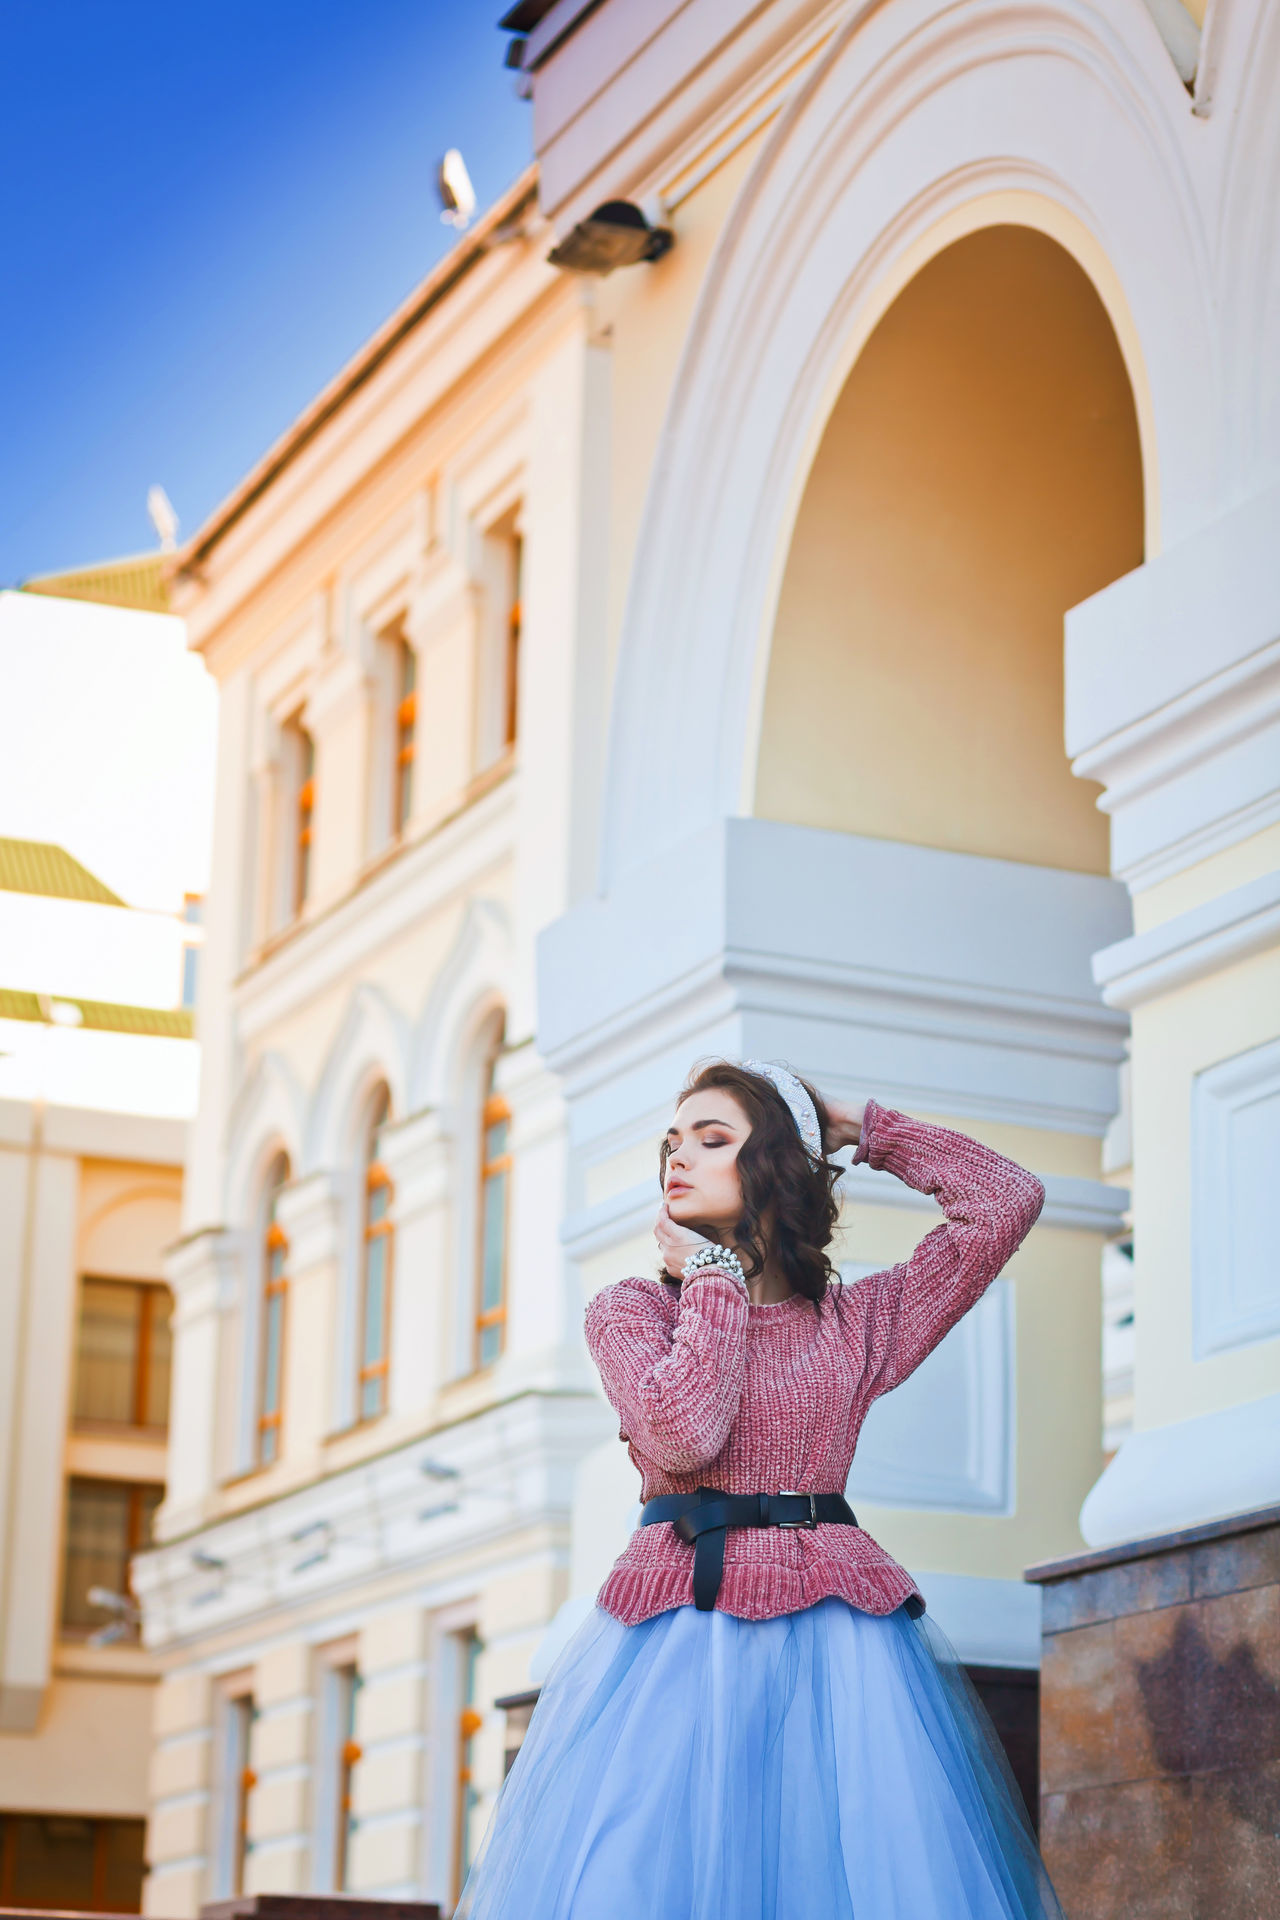 Arch Architecture Beauty Blue Building Exterior Built Structure City Editorial Photography Enjoying Life Enjoying The Sun Millennial Pink Outdoor Photography Sky Sunny Sunny Day Travel Destinations Vacations Warm Art Is Everywhere